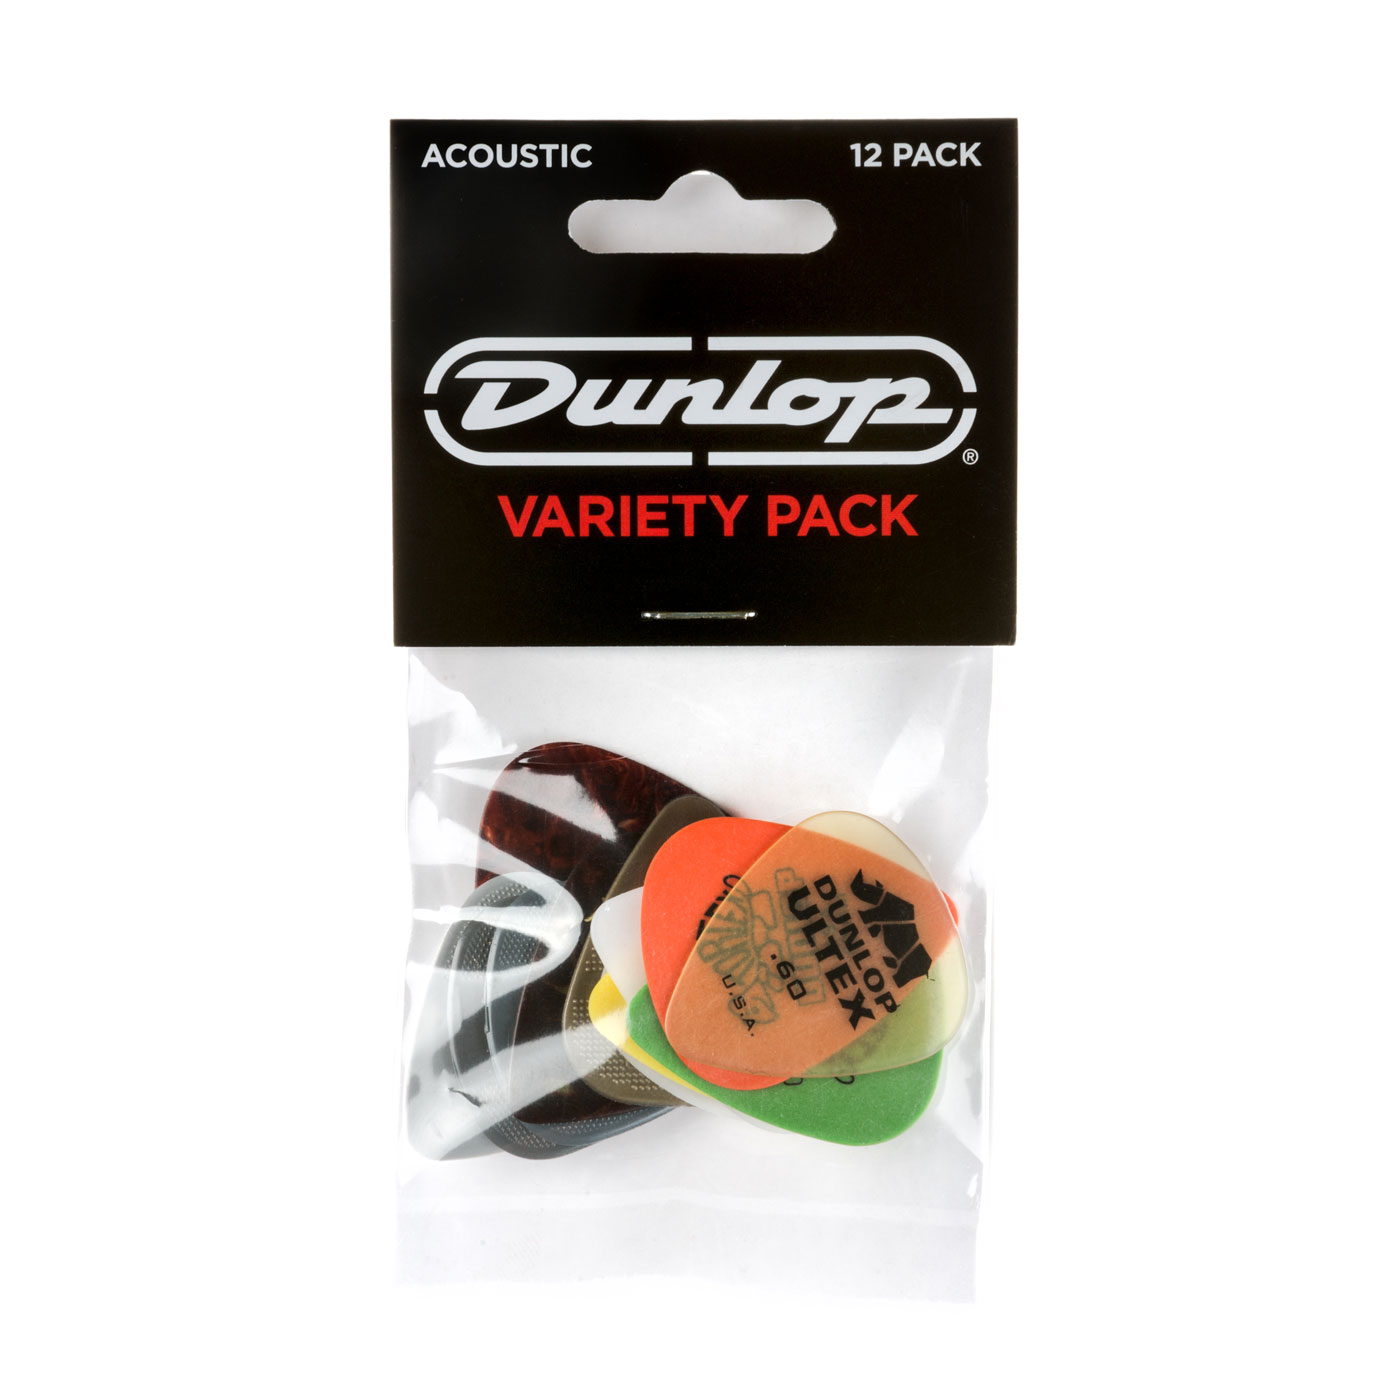 DUNLOP Médiators Acoustic Variety Pack